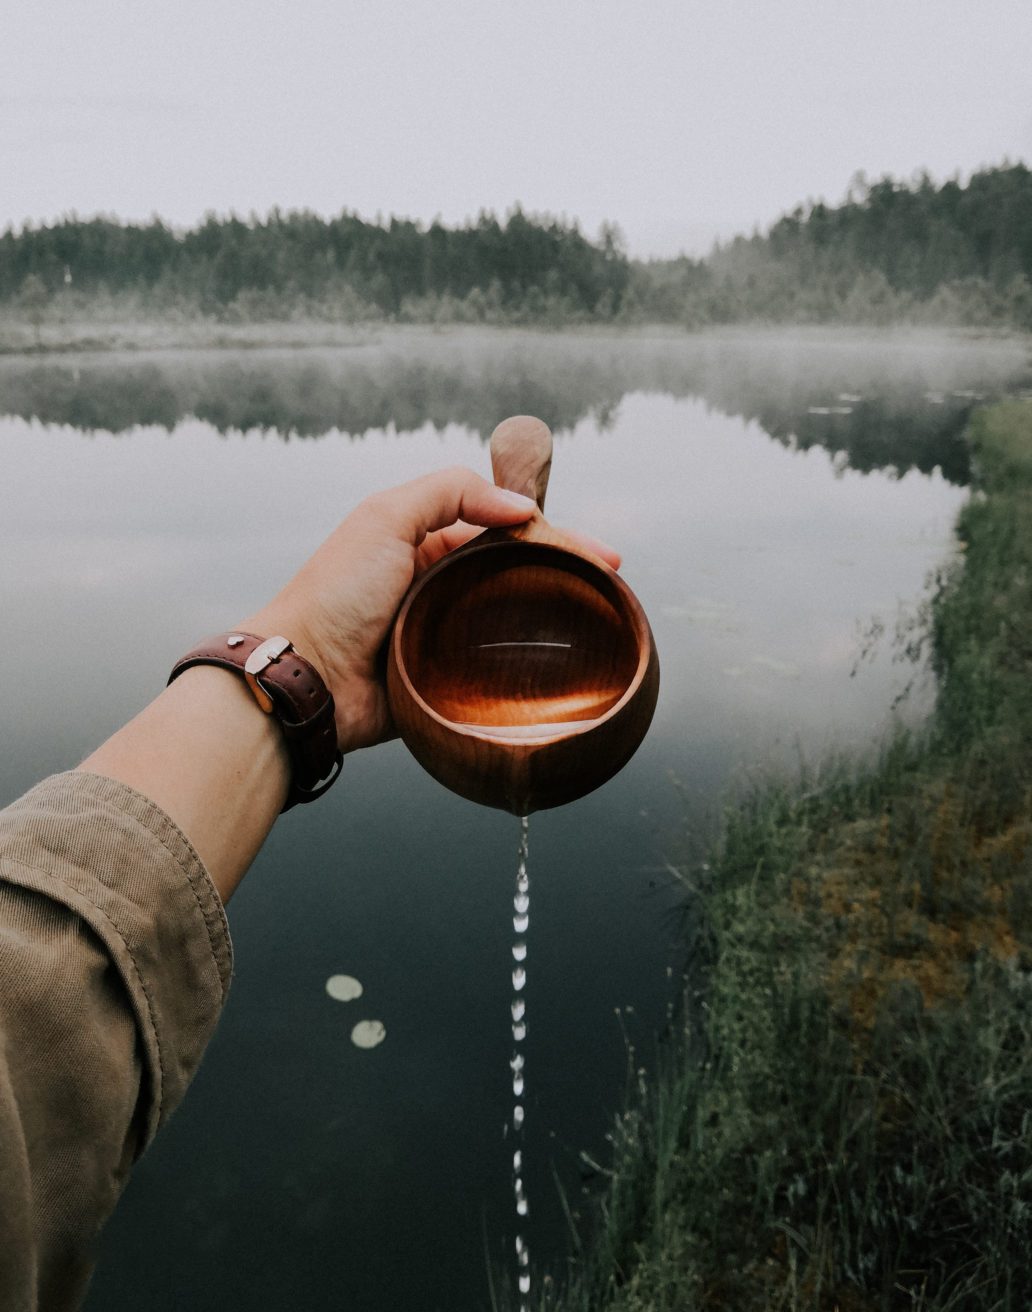 Woman pouring water from a kuksa wooden cup in front of a misty lake in the forest